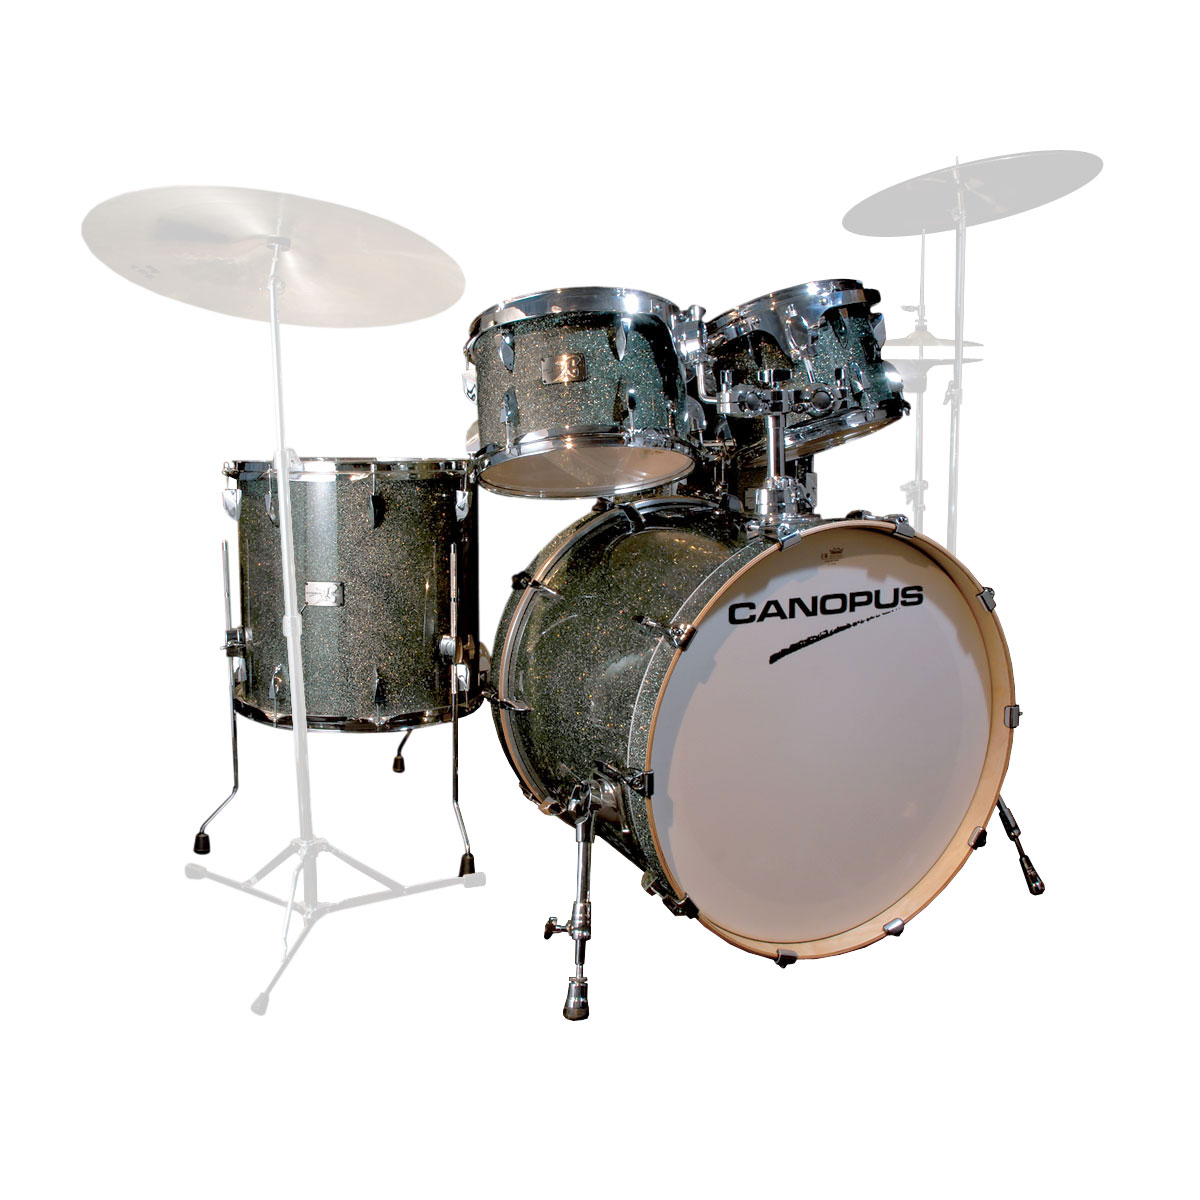 "Canopus Yaiba ""Groove Kit"" 5-Piece Drum Set Shell Pack (22"" Bass, 10/12/16"" Toms, 14"" Snare)"